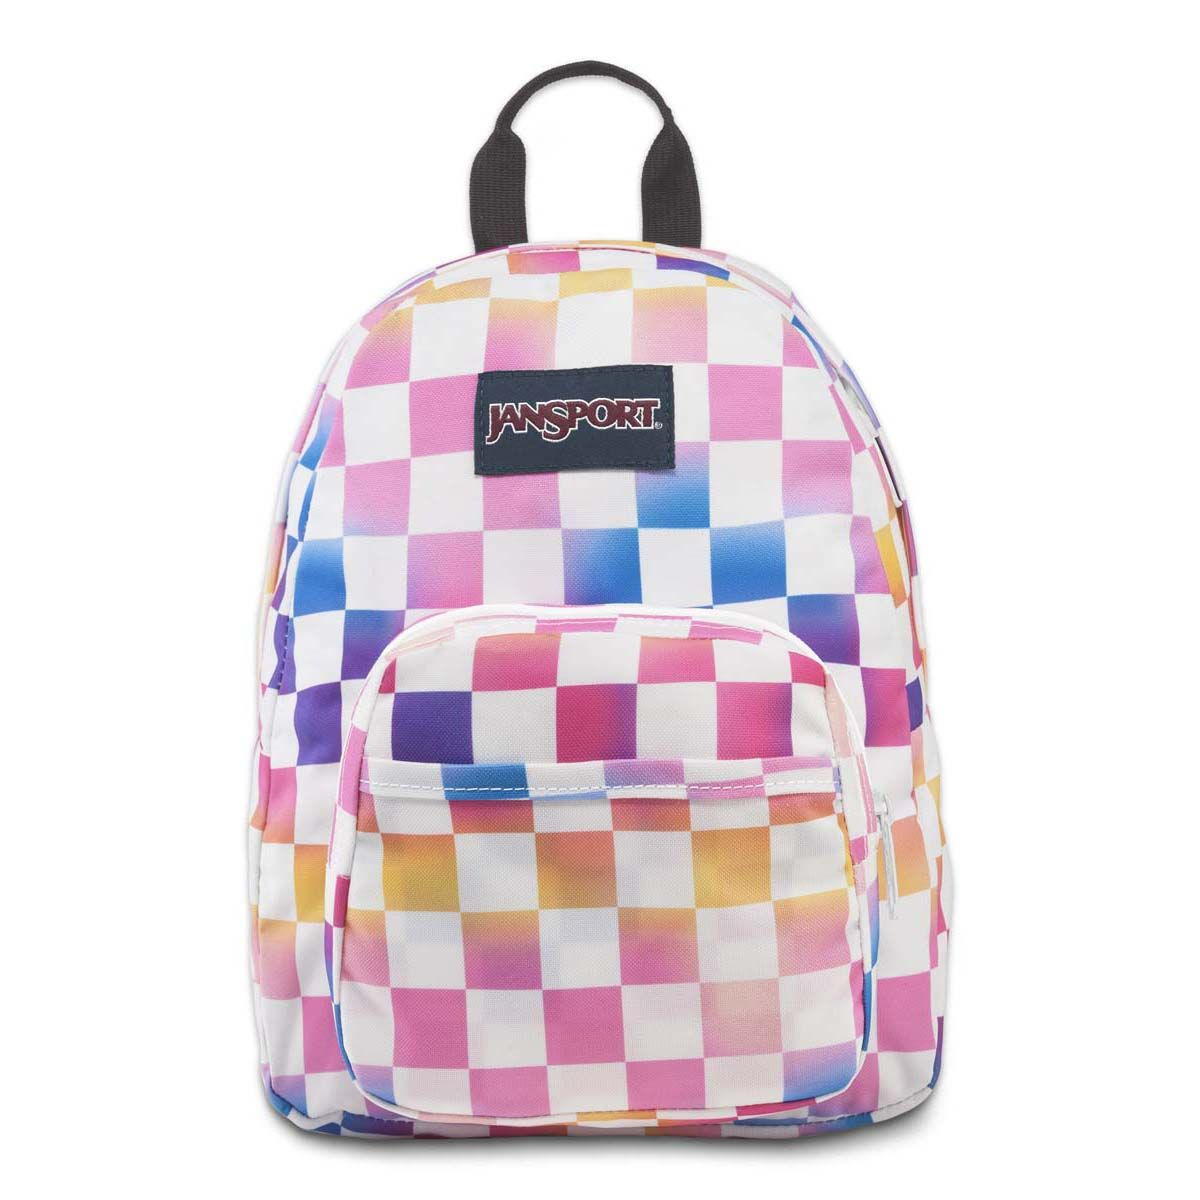 JanSport Half Pint Mini Backpack in Check It